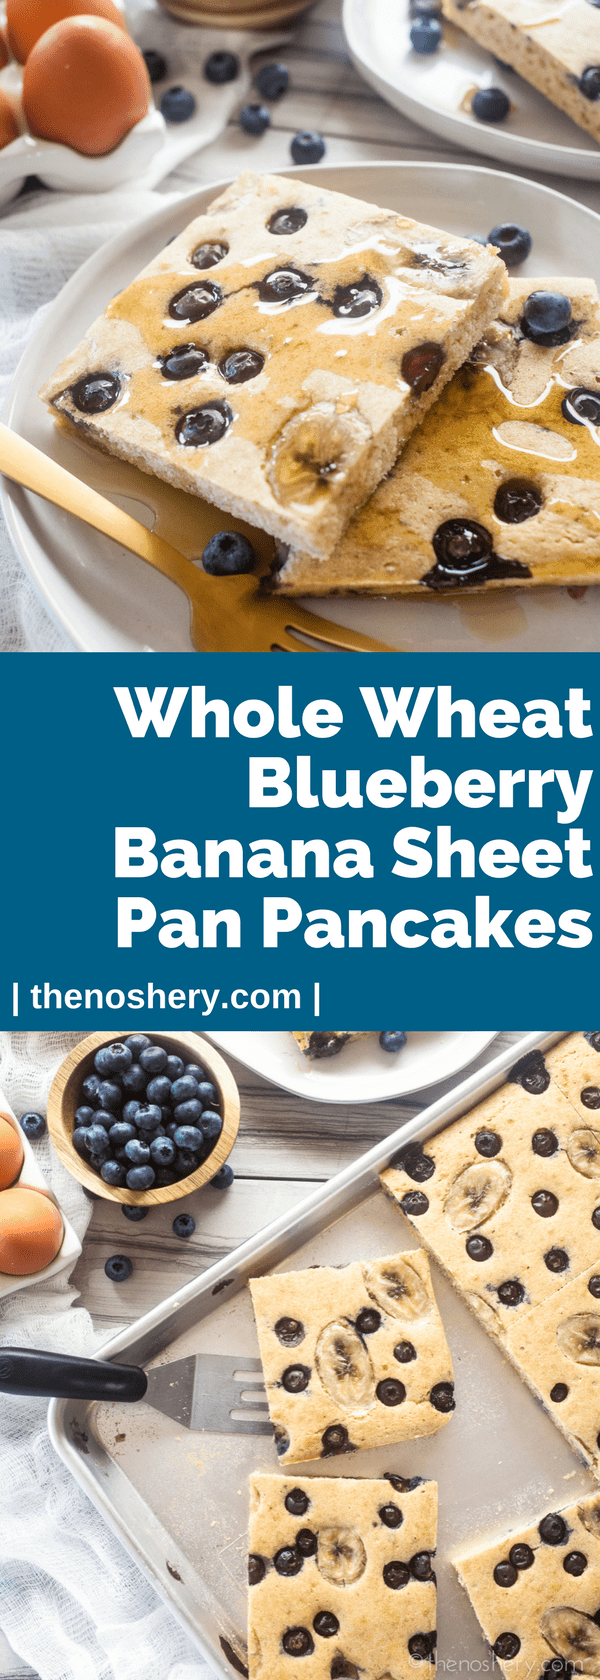 Fluffy Whole Wheat Blueberry Banana Sheet Pan Pancakes | Soft light and fluffy whole wheat oven baked pancakes for breakfast or brunch. The best way to feed a crowd, and easy to make. | The Noshery